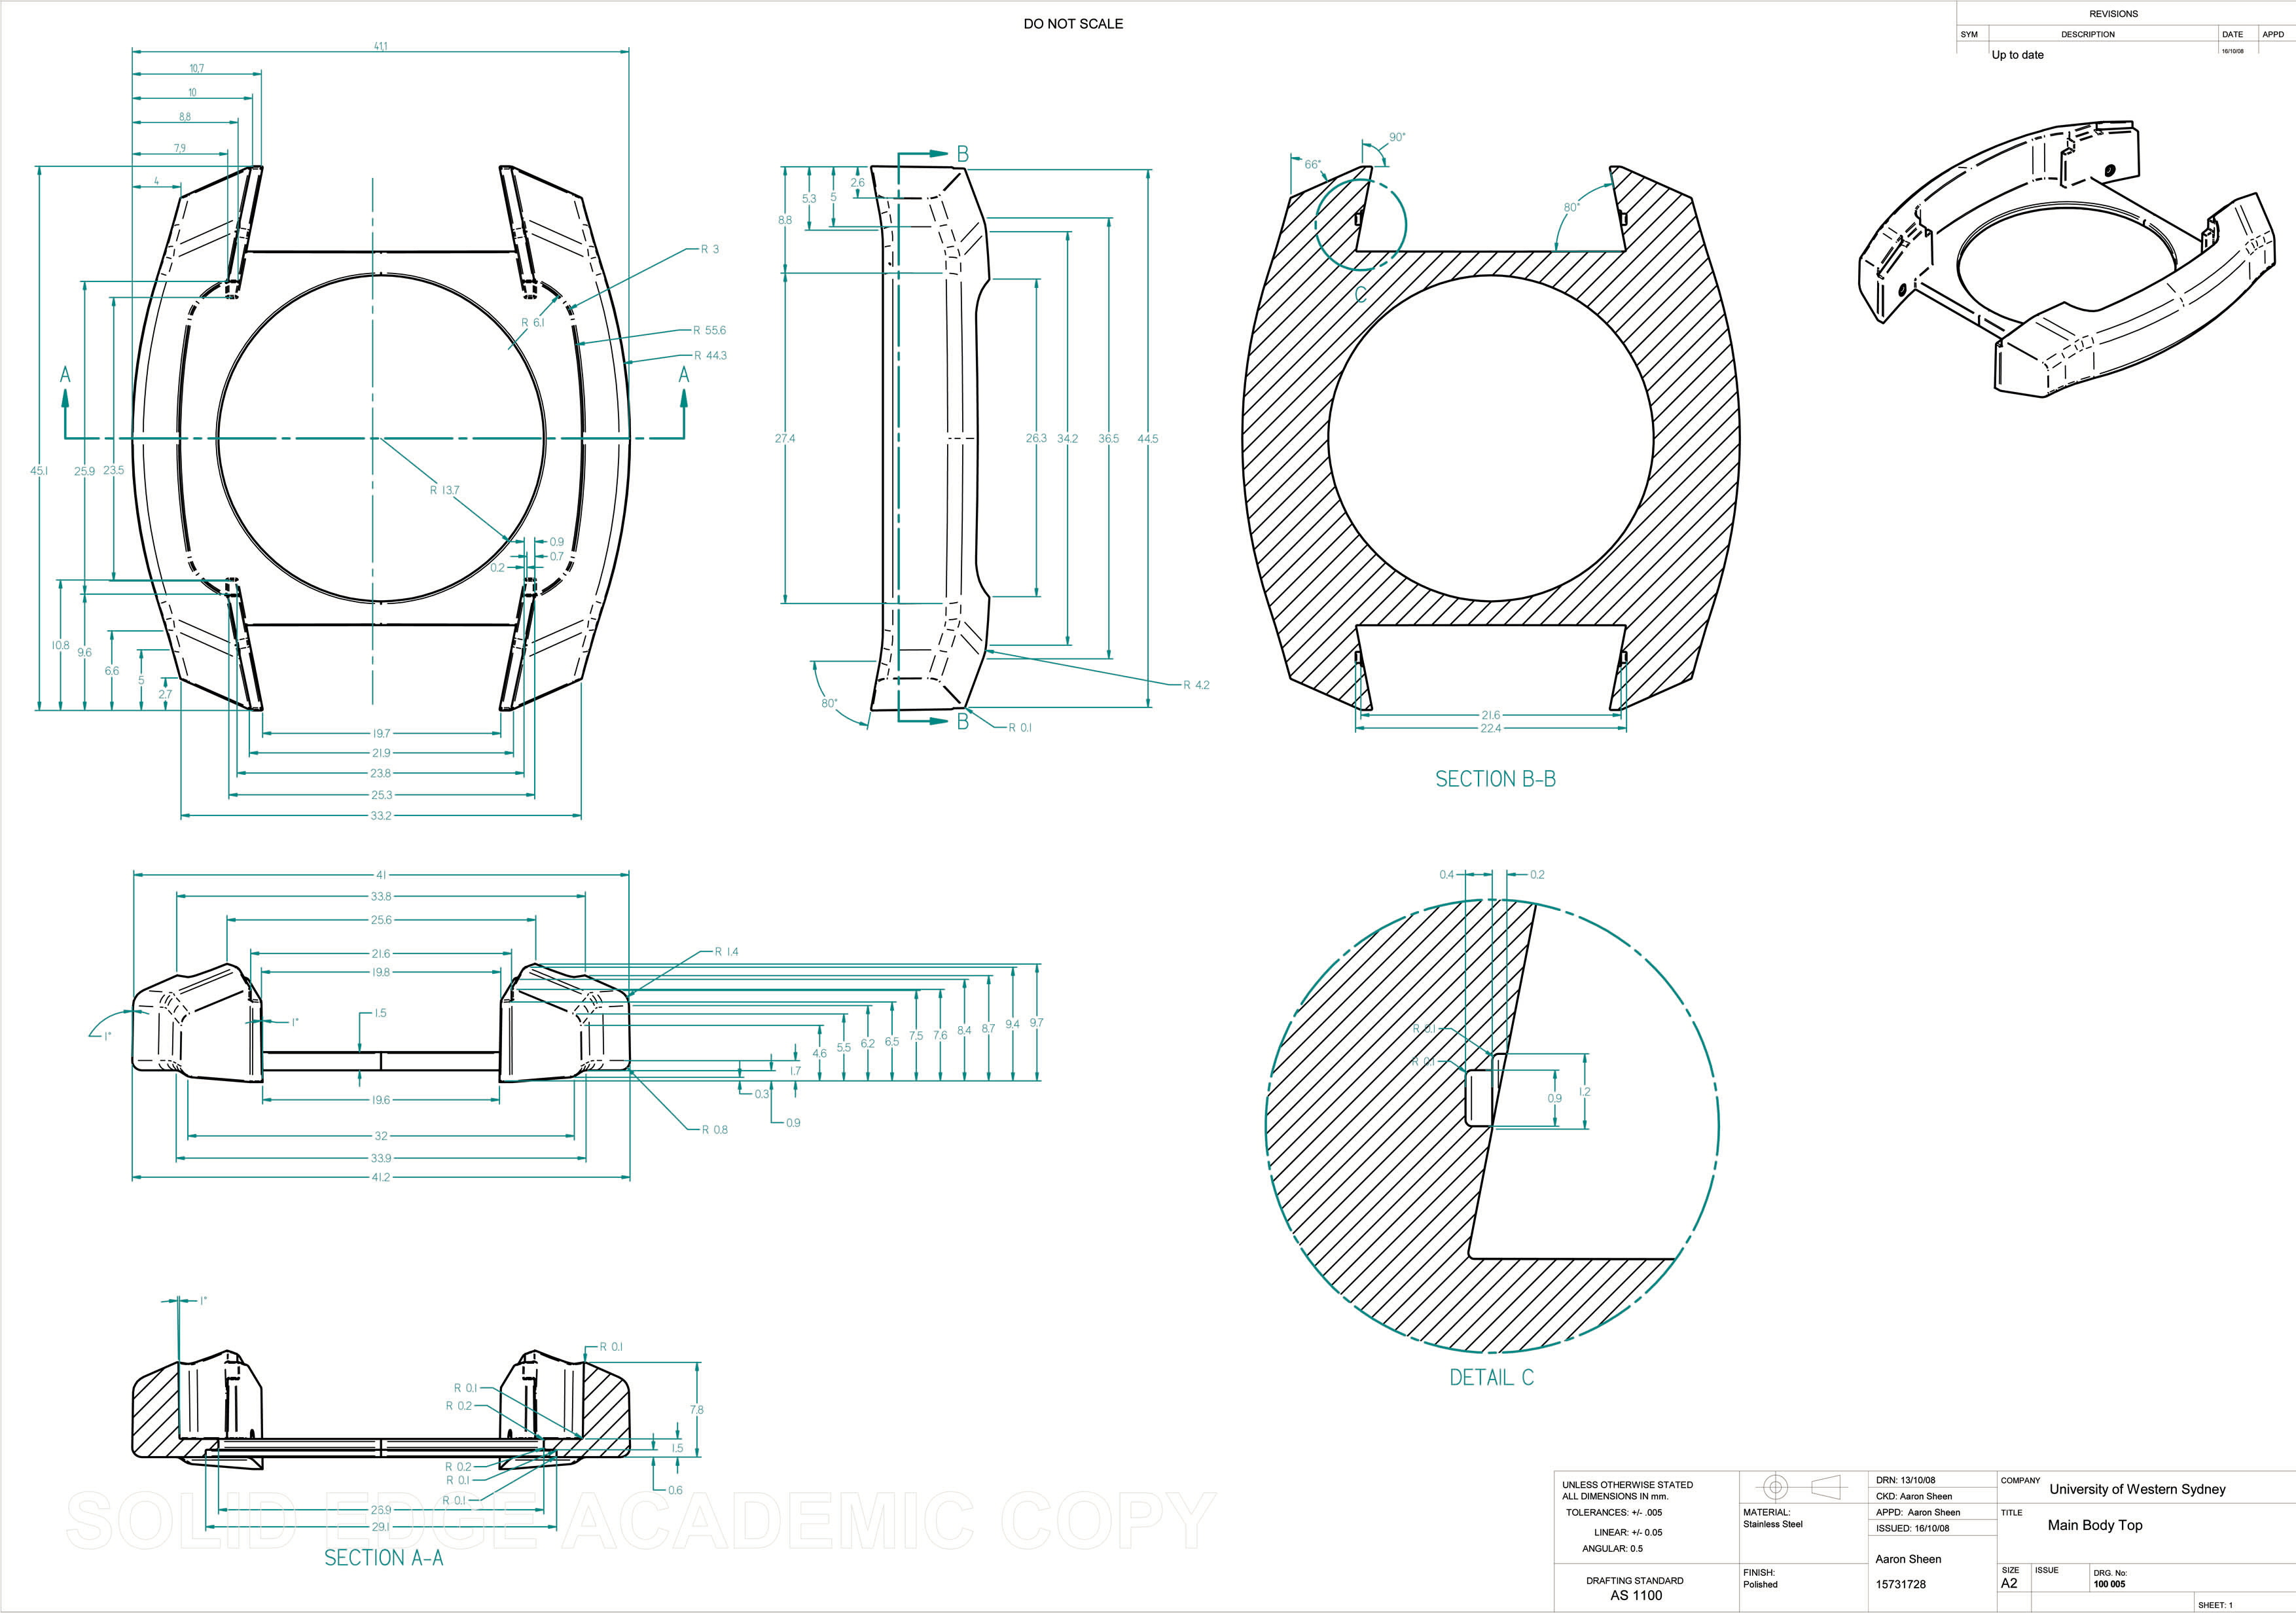 Engineering drawing examples by Aaron Sheen at Coroflot.com